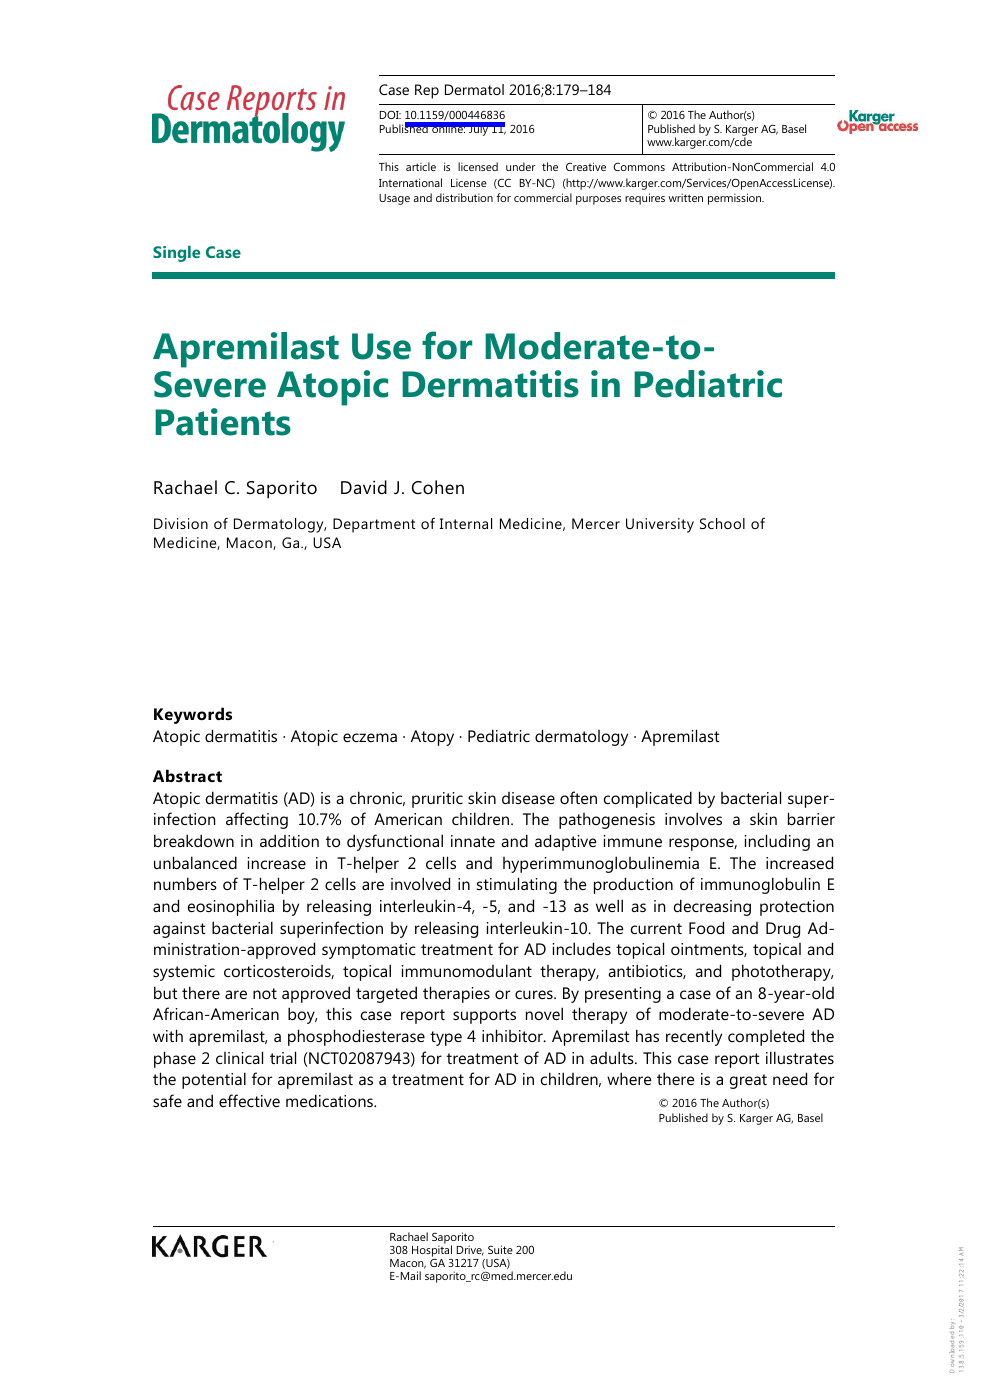 Apremilast Use for Moderate-to-Severe Atopic Dermatitis in